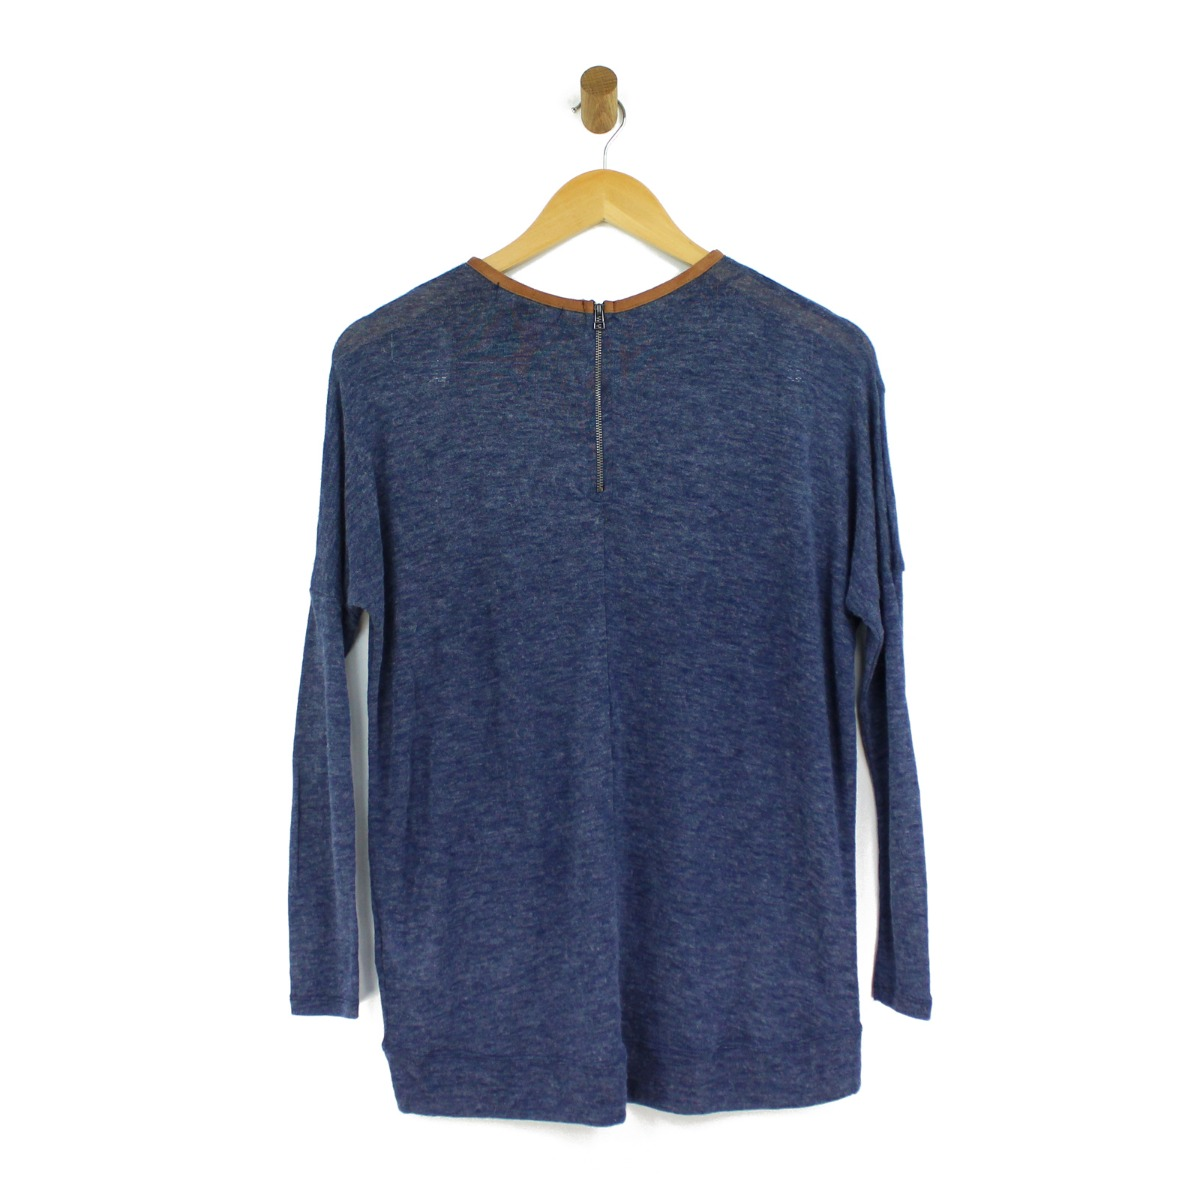 Womens-Thin-Jumpers-Sweater-Knitted-Long-Sleeve-Black-Navy-Size-6-8-10-12-14-20